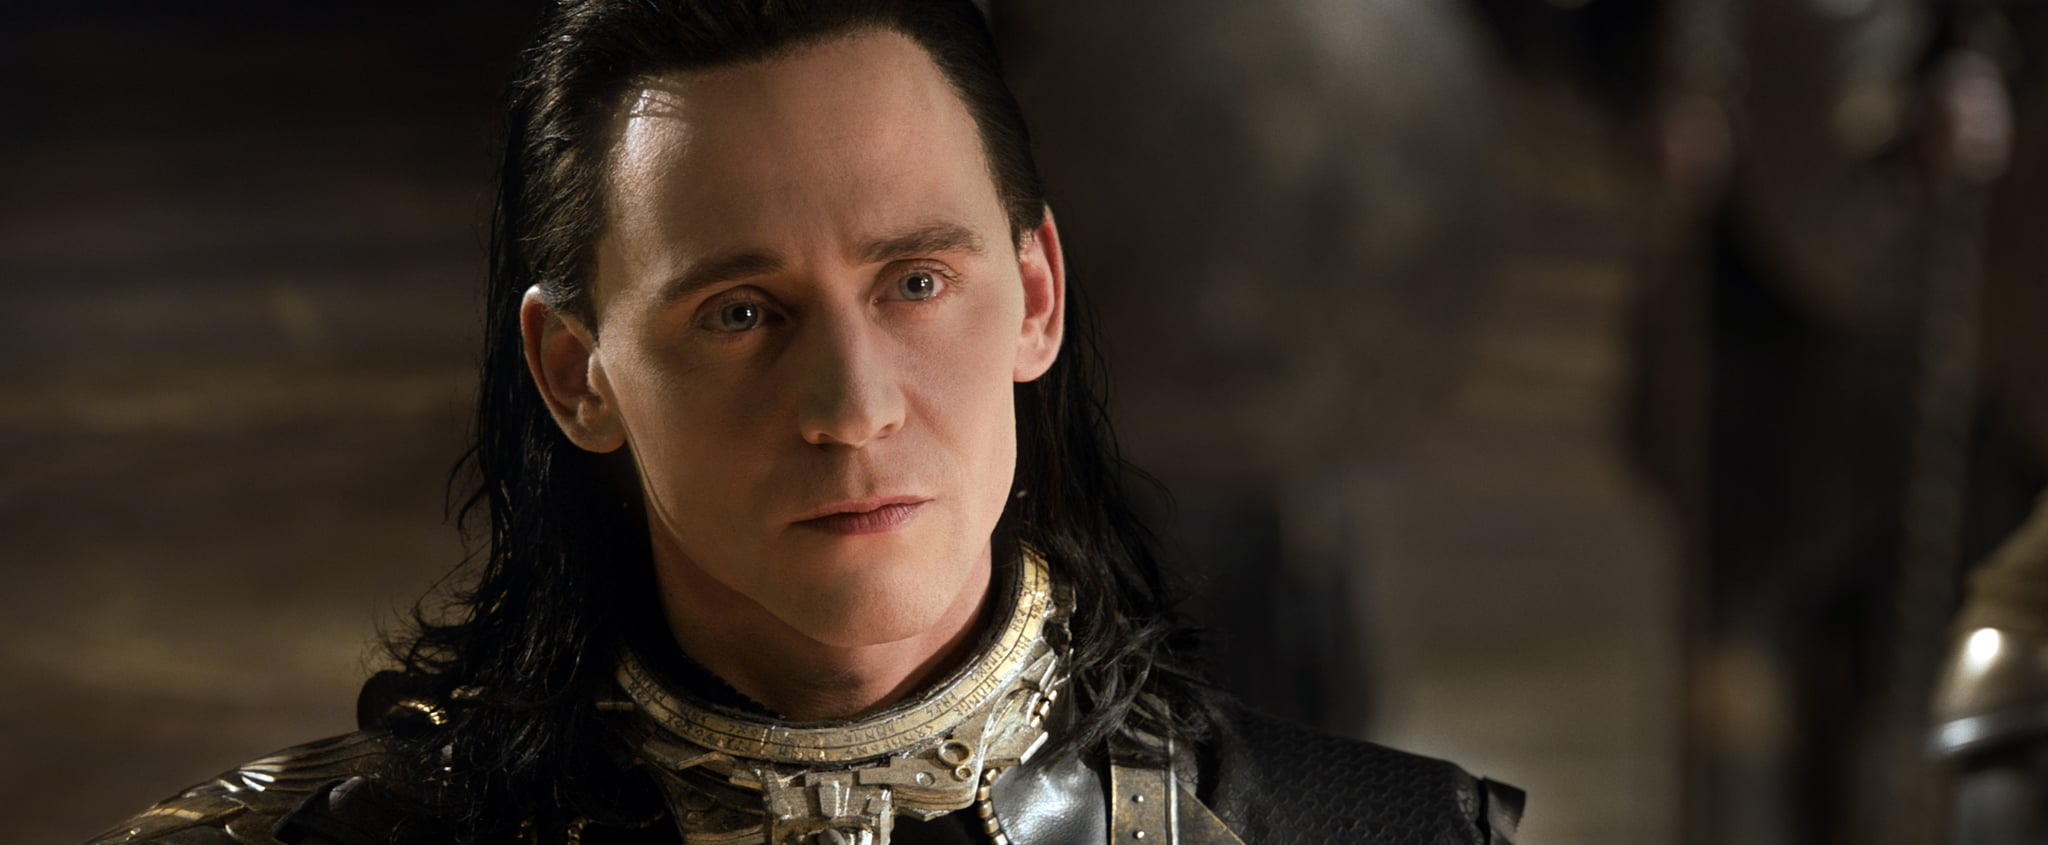 THOR: THE DARK WORLD, Tom Hiddleston, 2013. Walt Disney Studios/courtesy Everett Collection